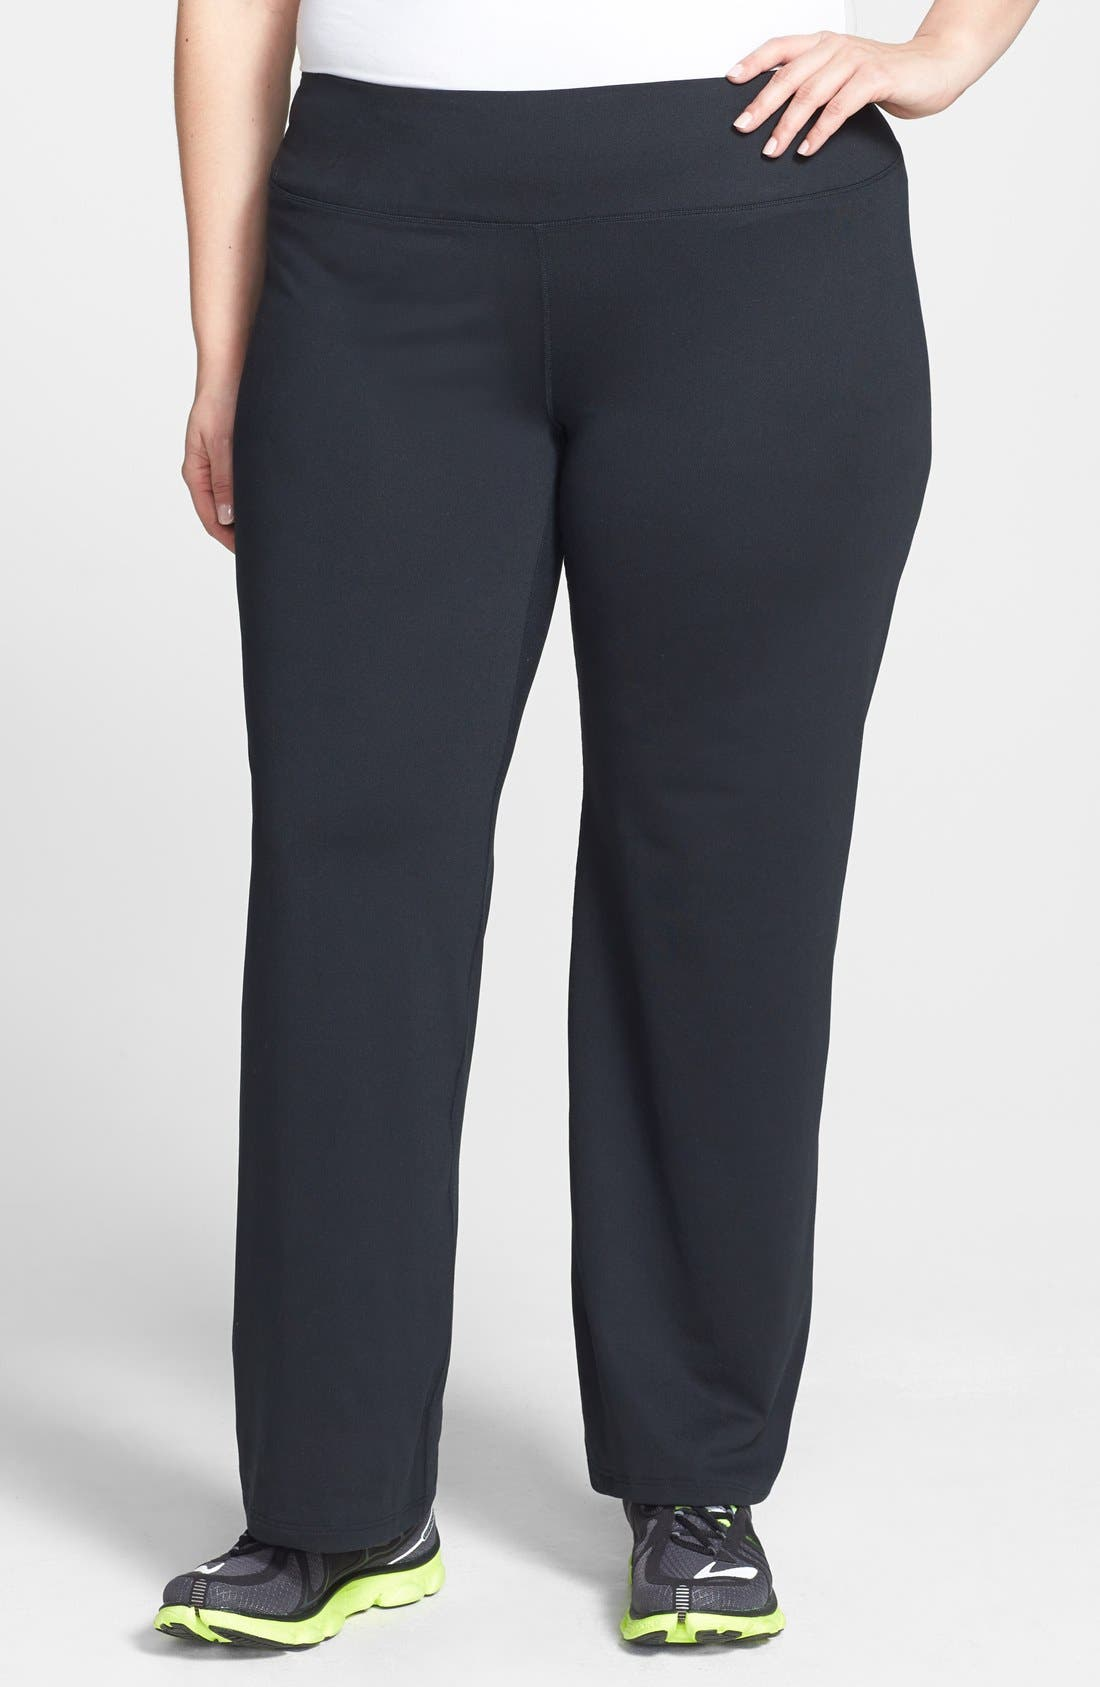 Alternate Image 1 Selected - Moving Comfort 'Fearless' Pants (UPF 50) (Plus Size)